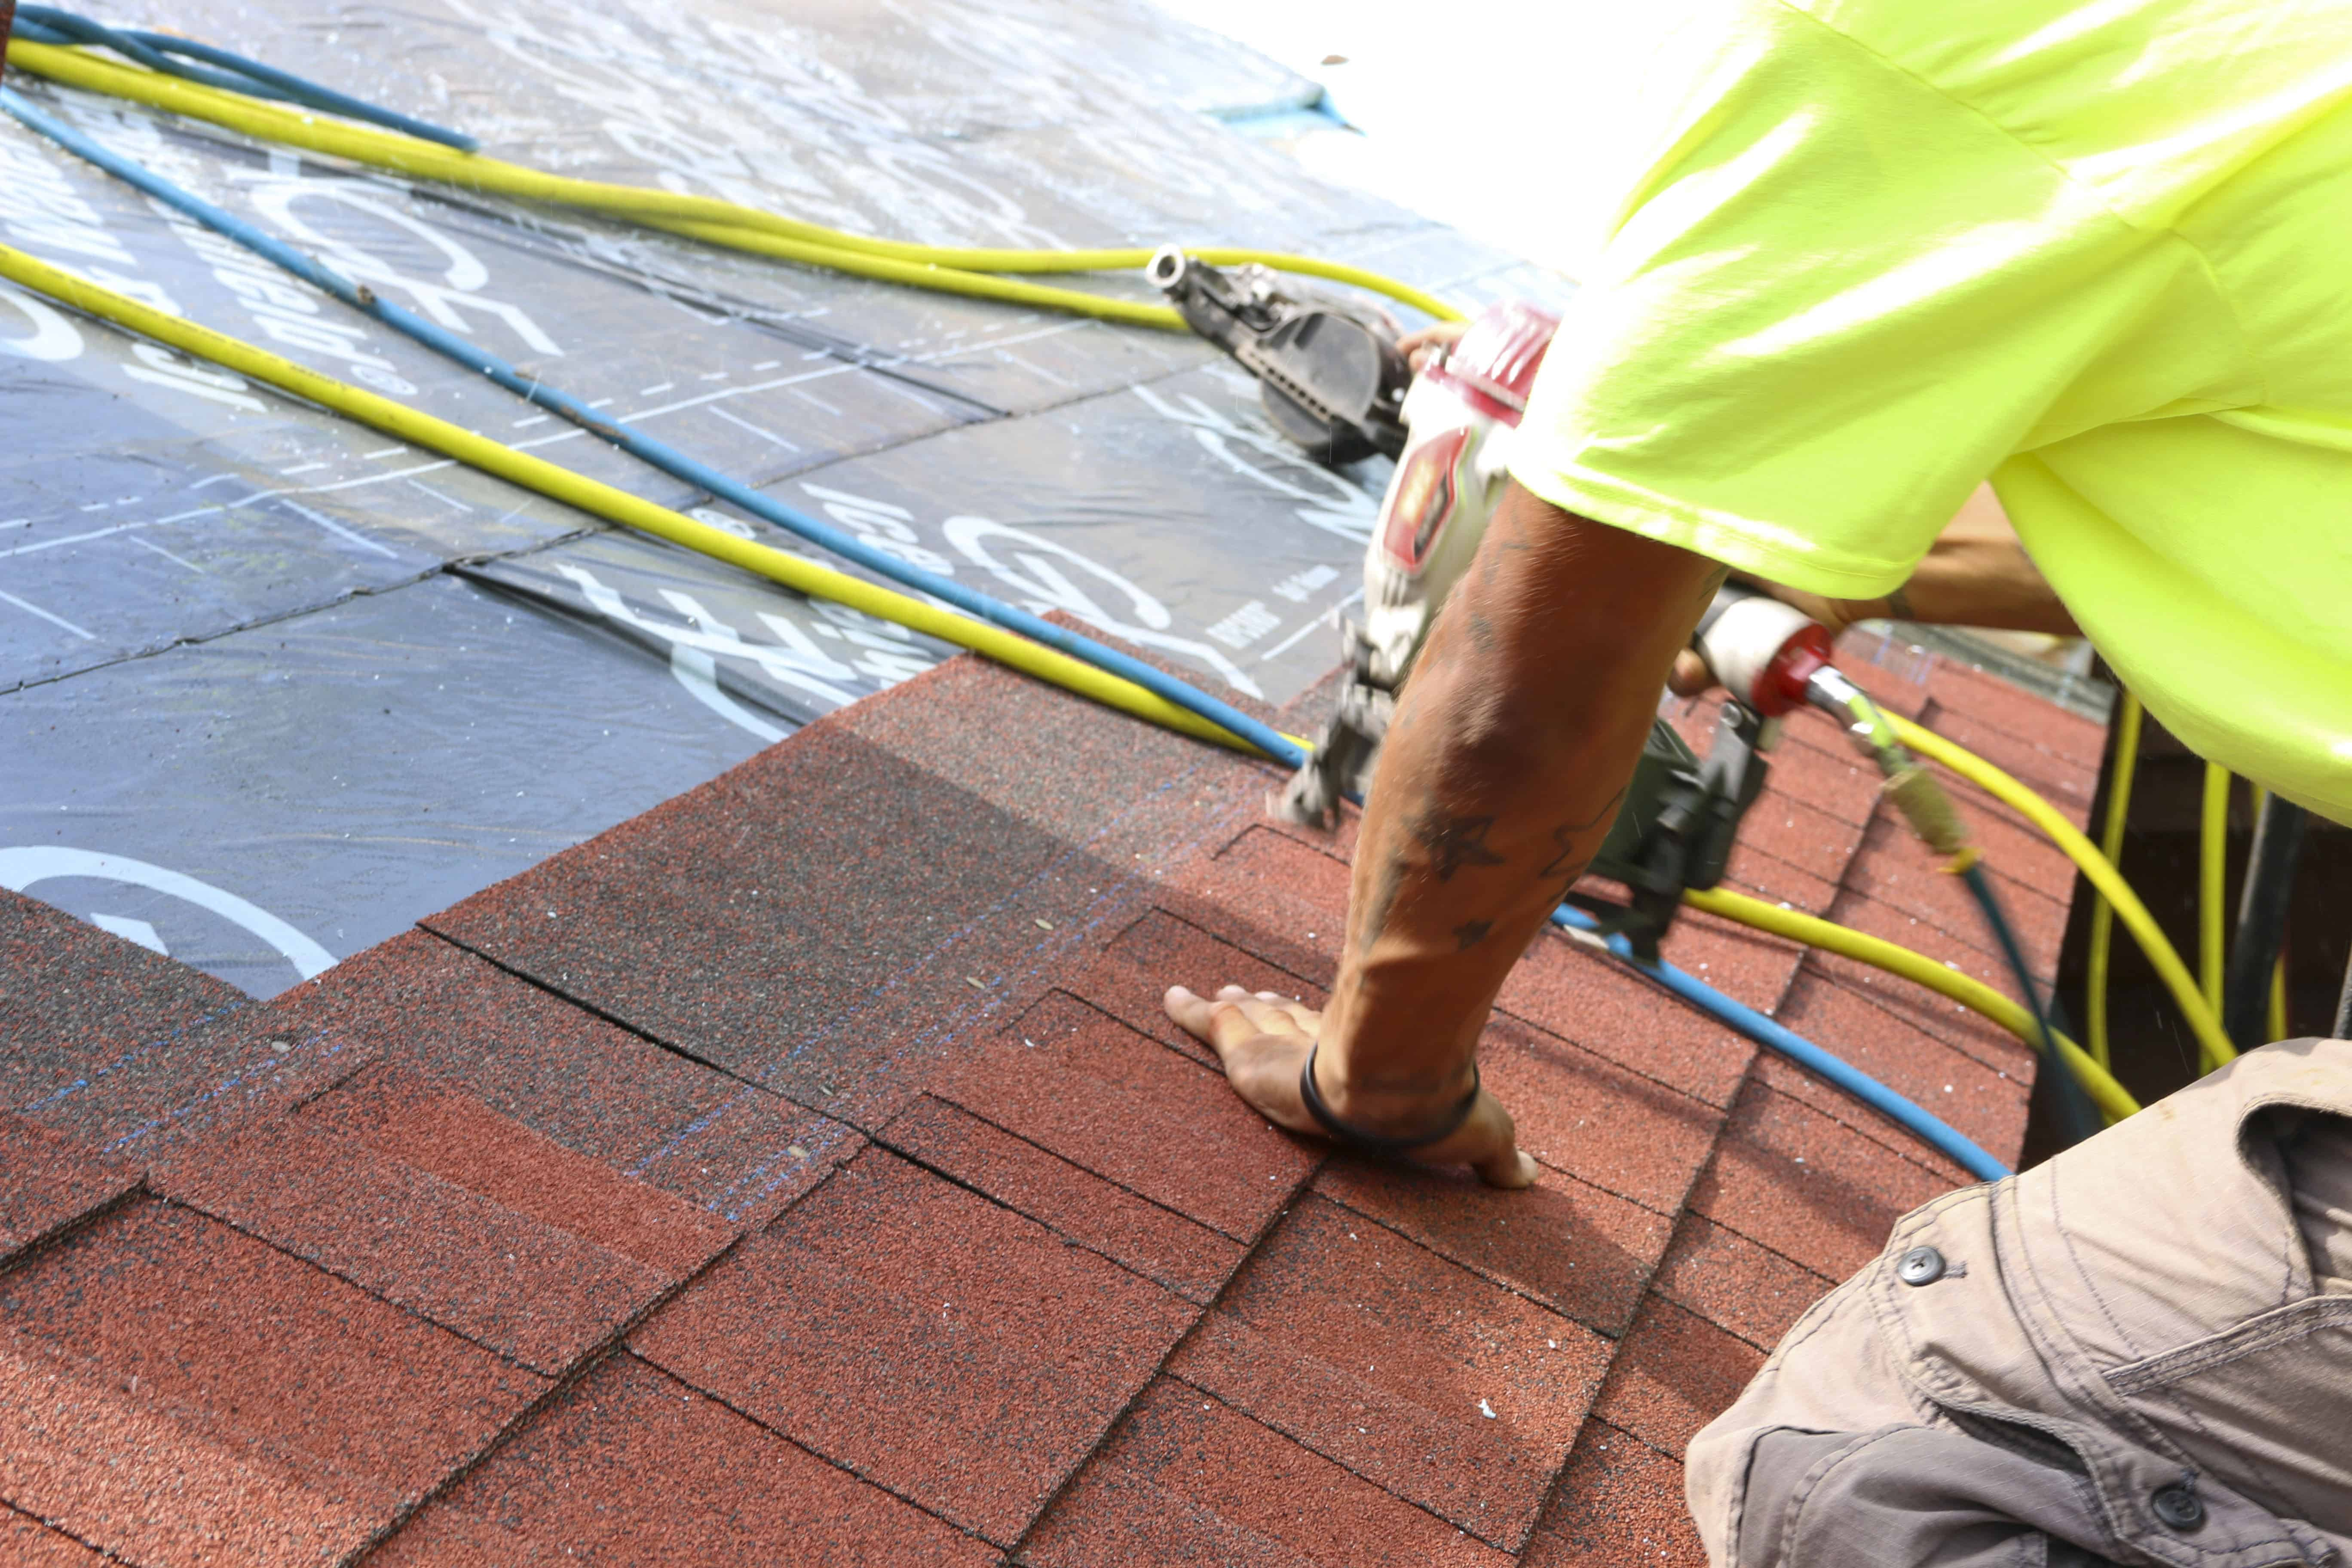 West Roofing Systems, KleenWork Construction Partner to Re-Roof Cleveland Veteran Home